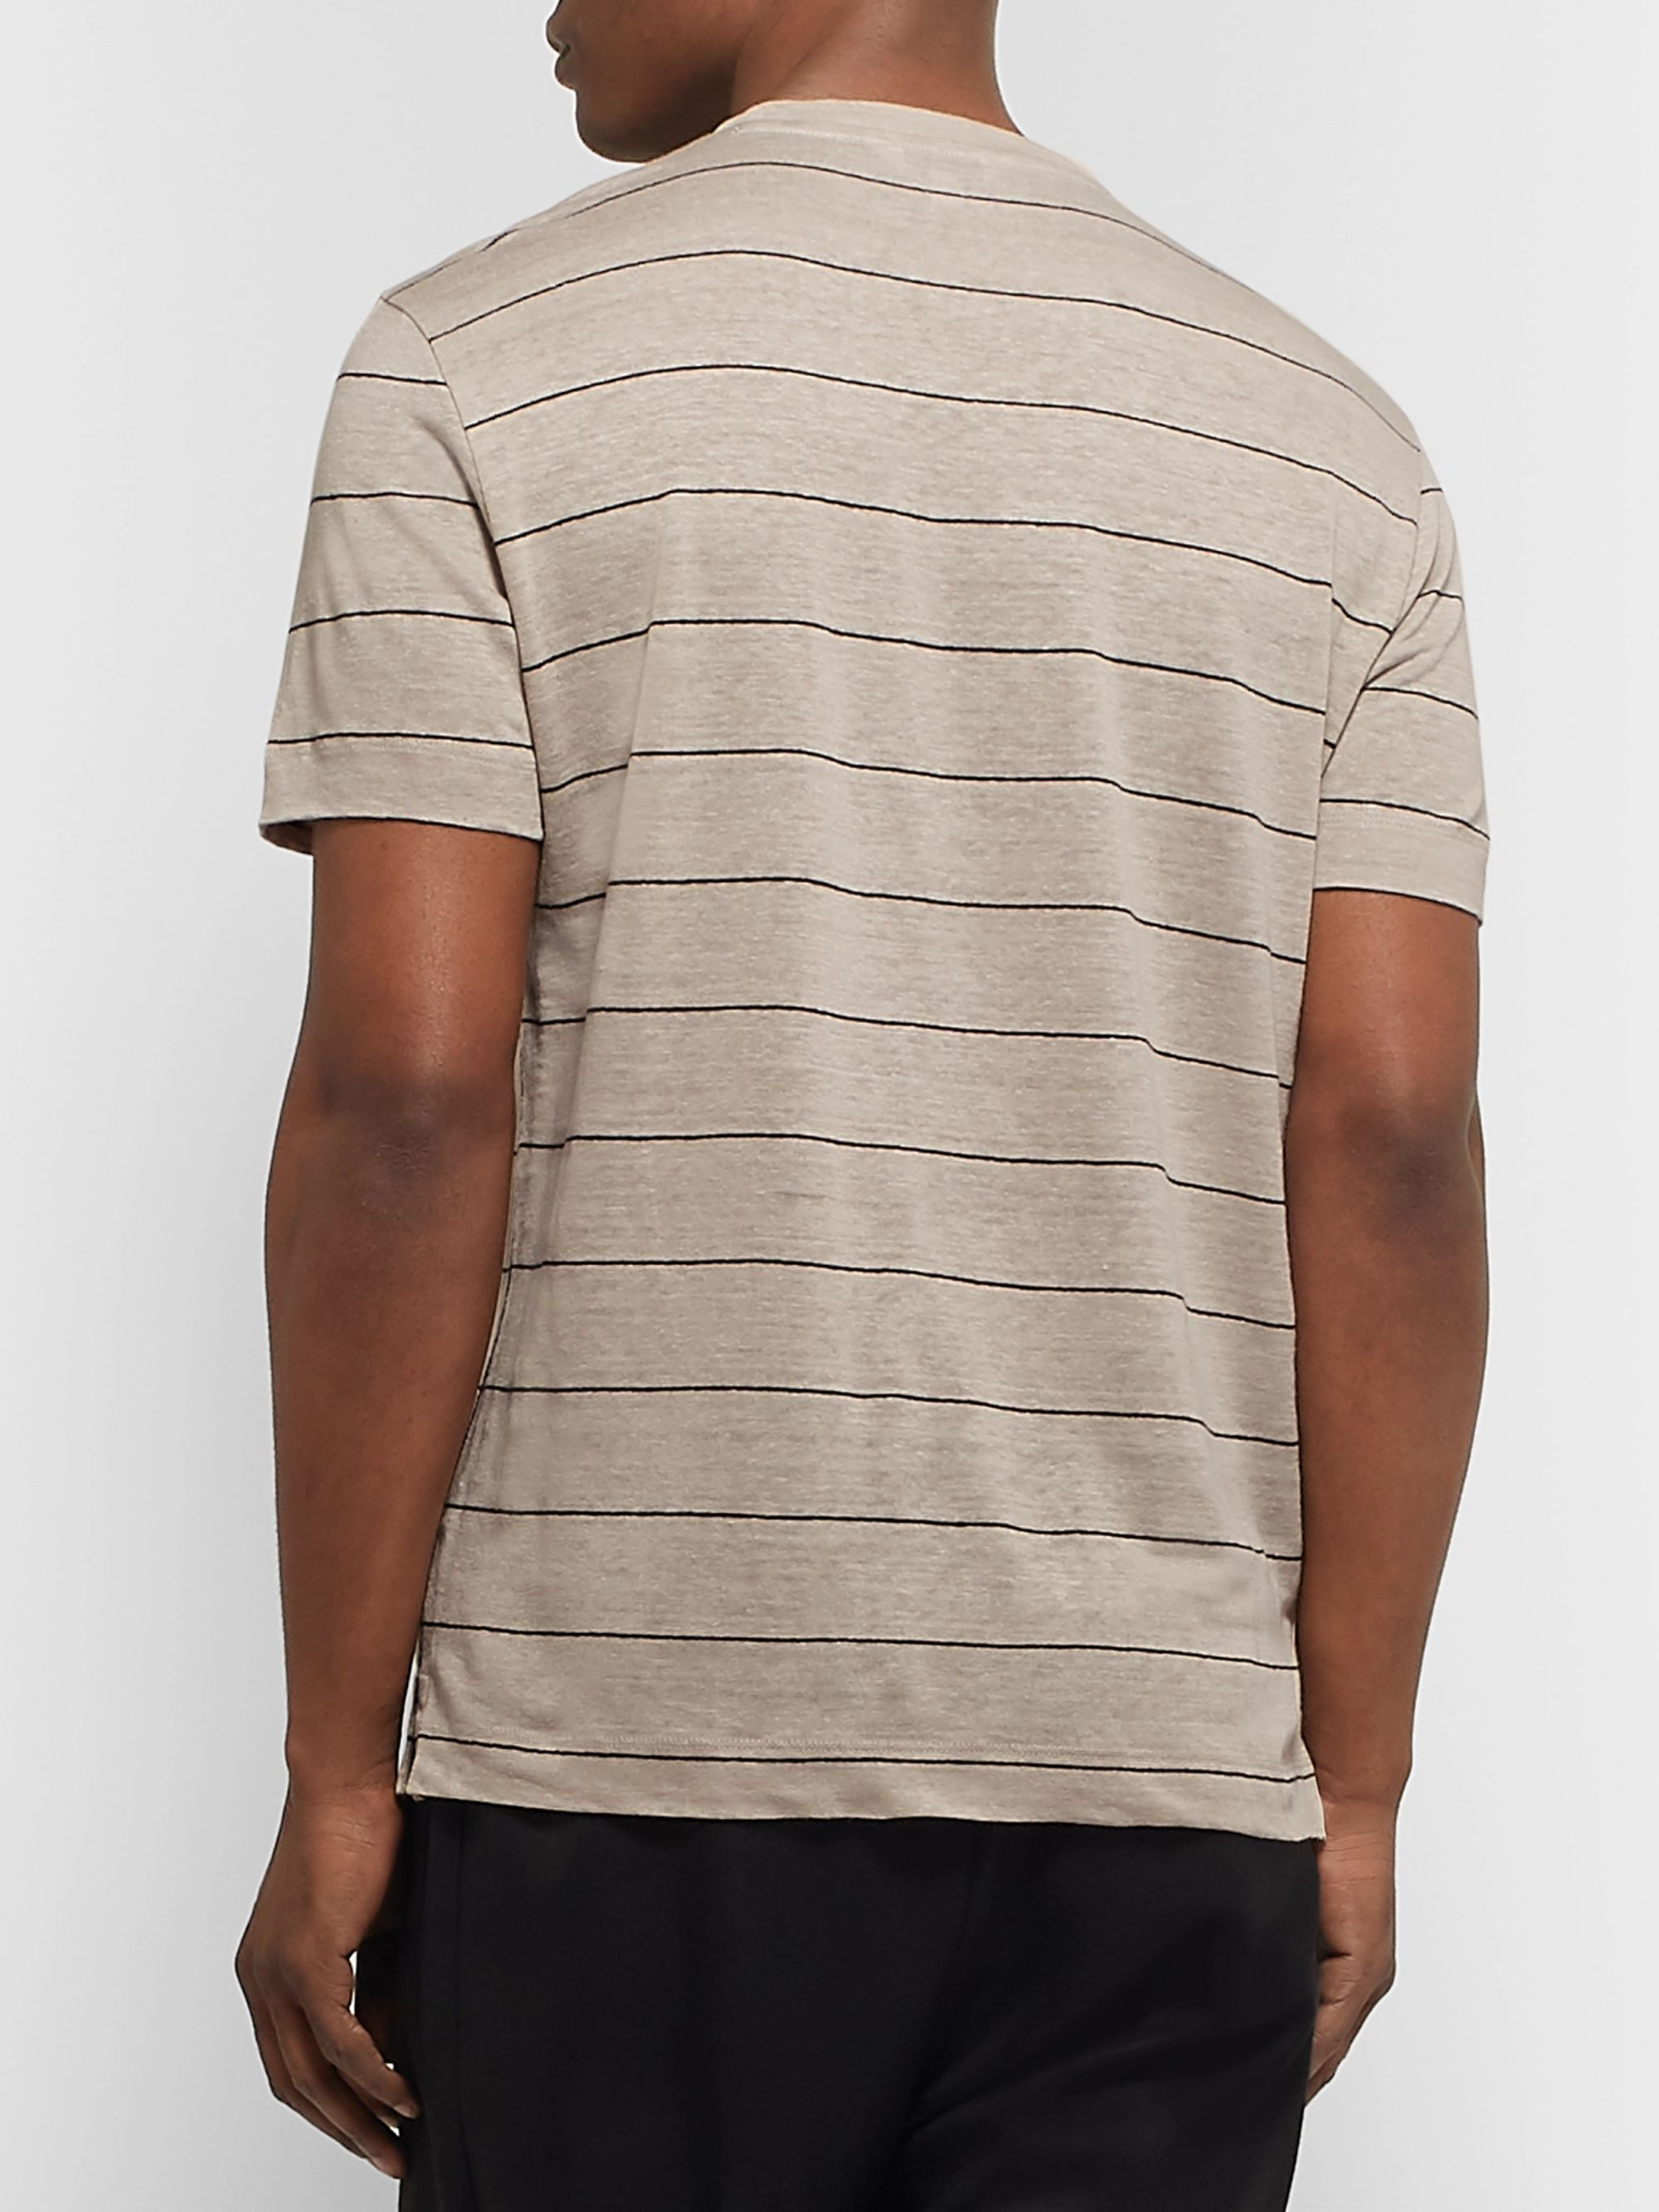 Club Monaco Striped Linen T-Shirt